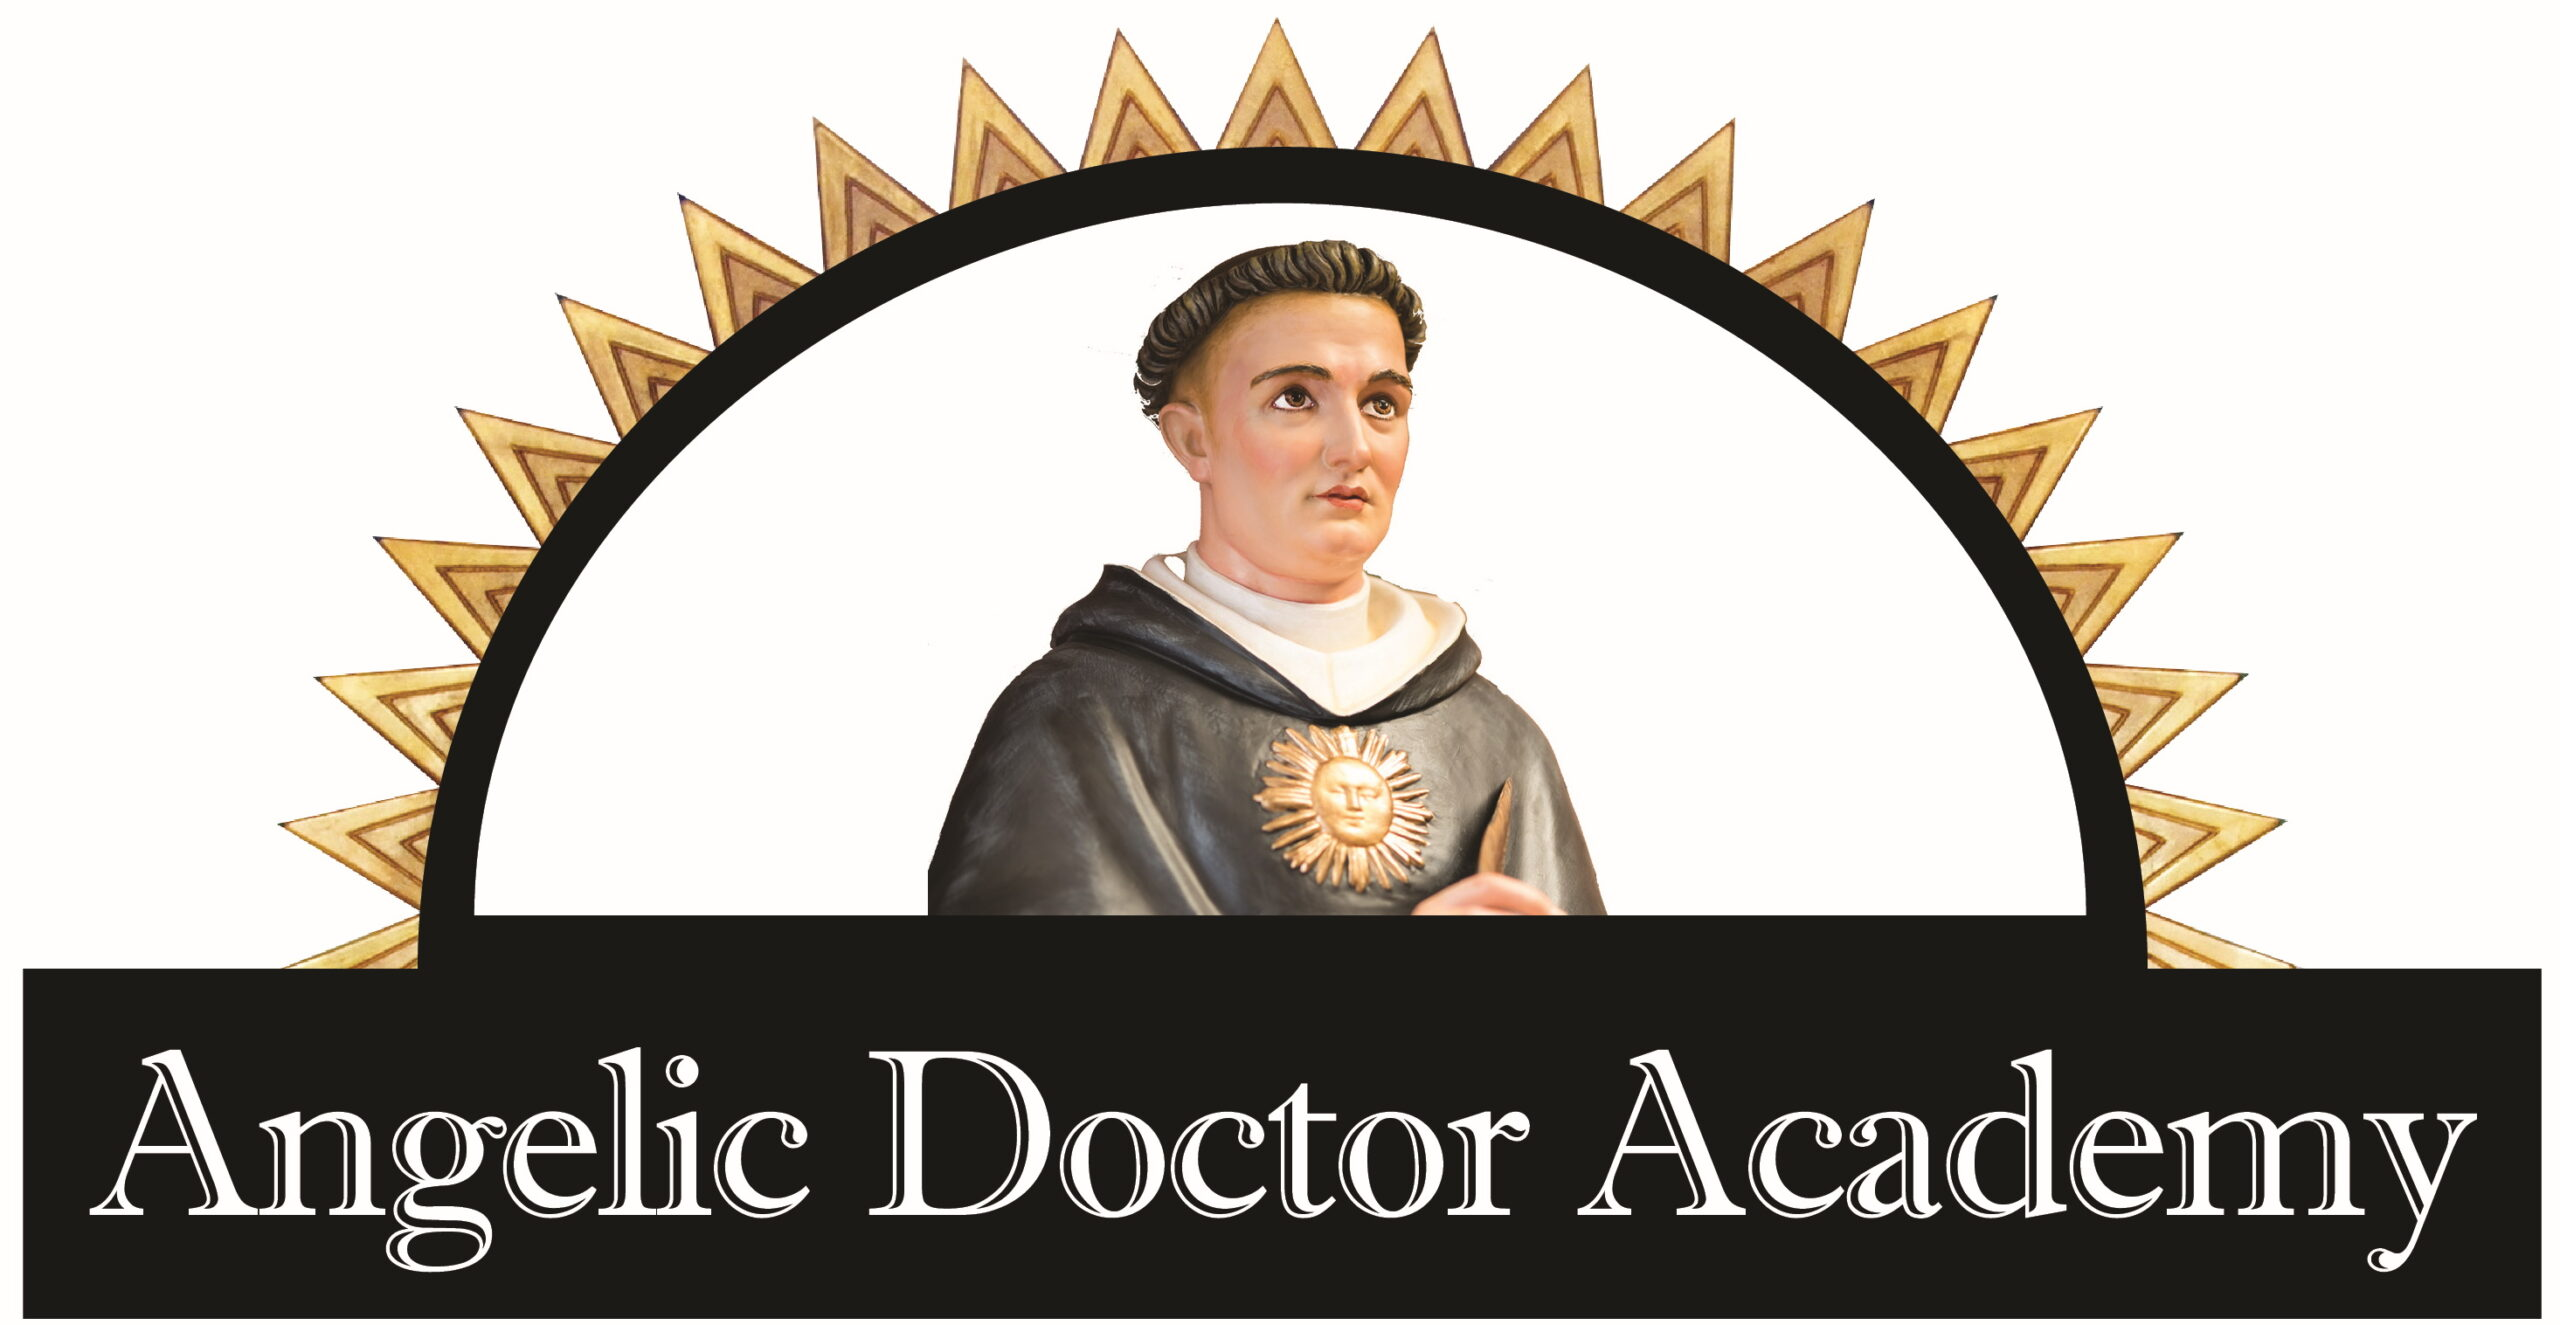 Angelic Doctor Academy, Inc.